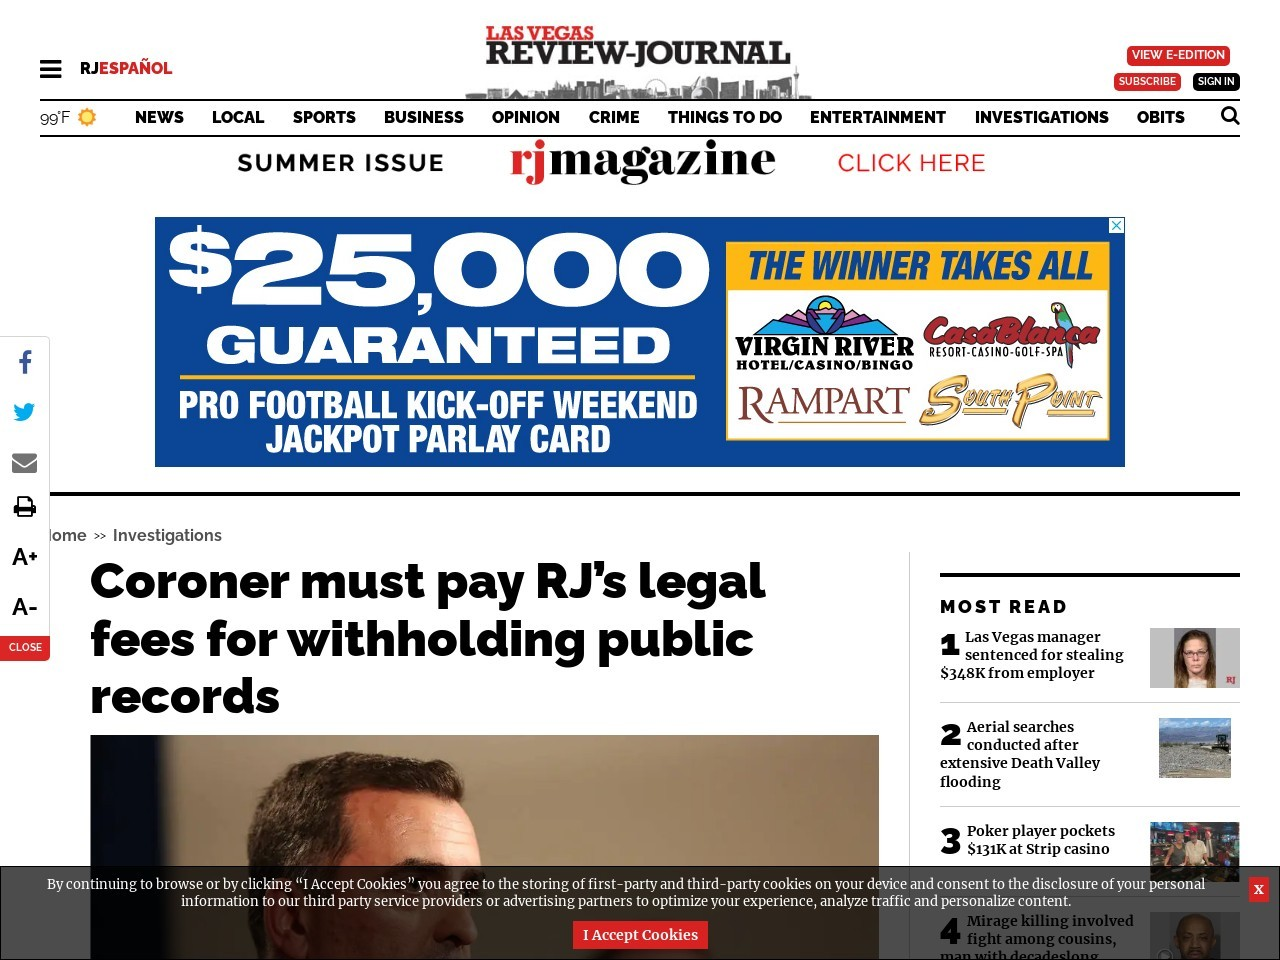 Coroner must pay RJ's legal fees for withholding public records